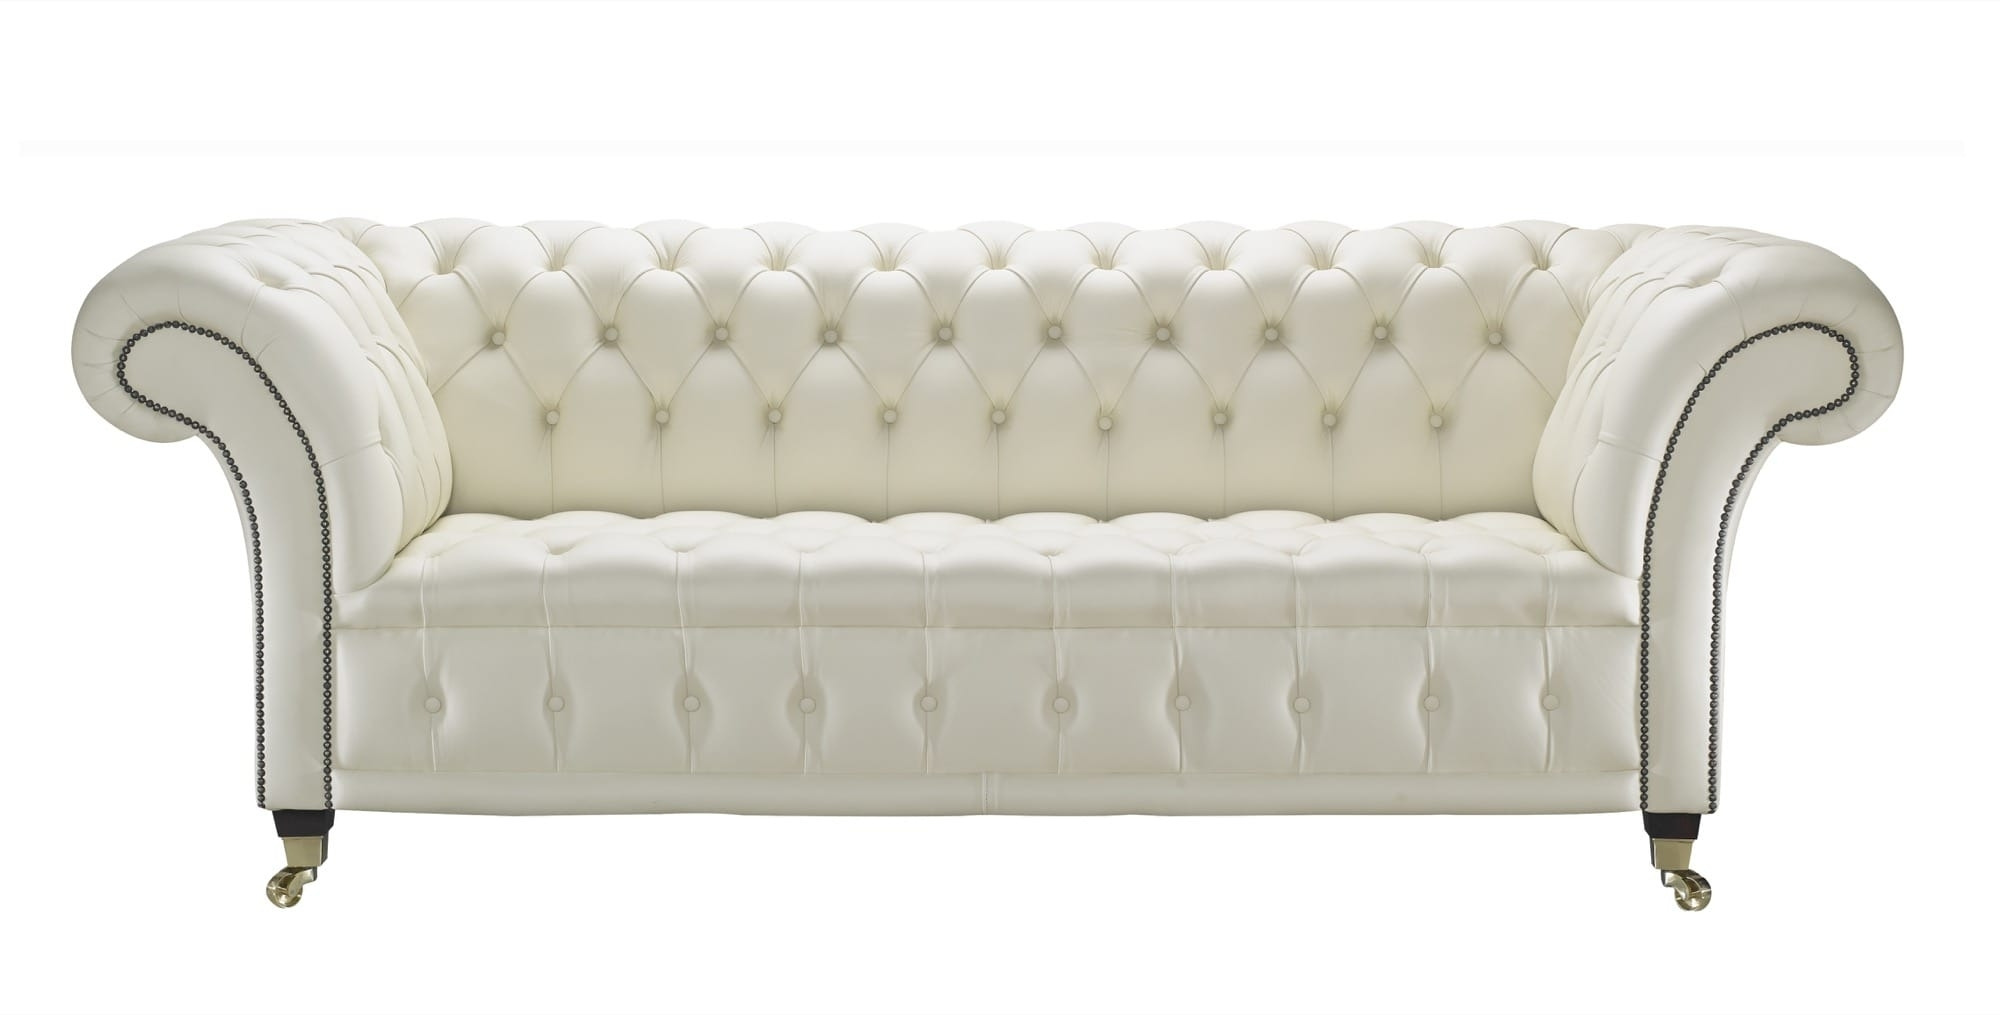 Recent Cream Leather Chesterfield Sofa, Handcrafted In The Uk For Chesterfield Sofas (View 17 of 20)